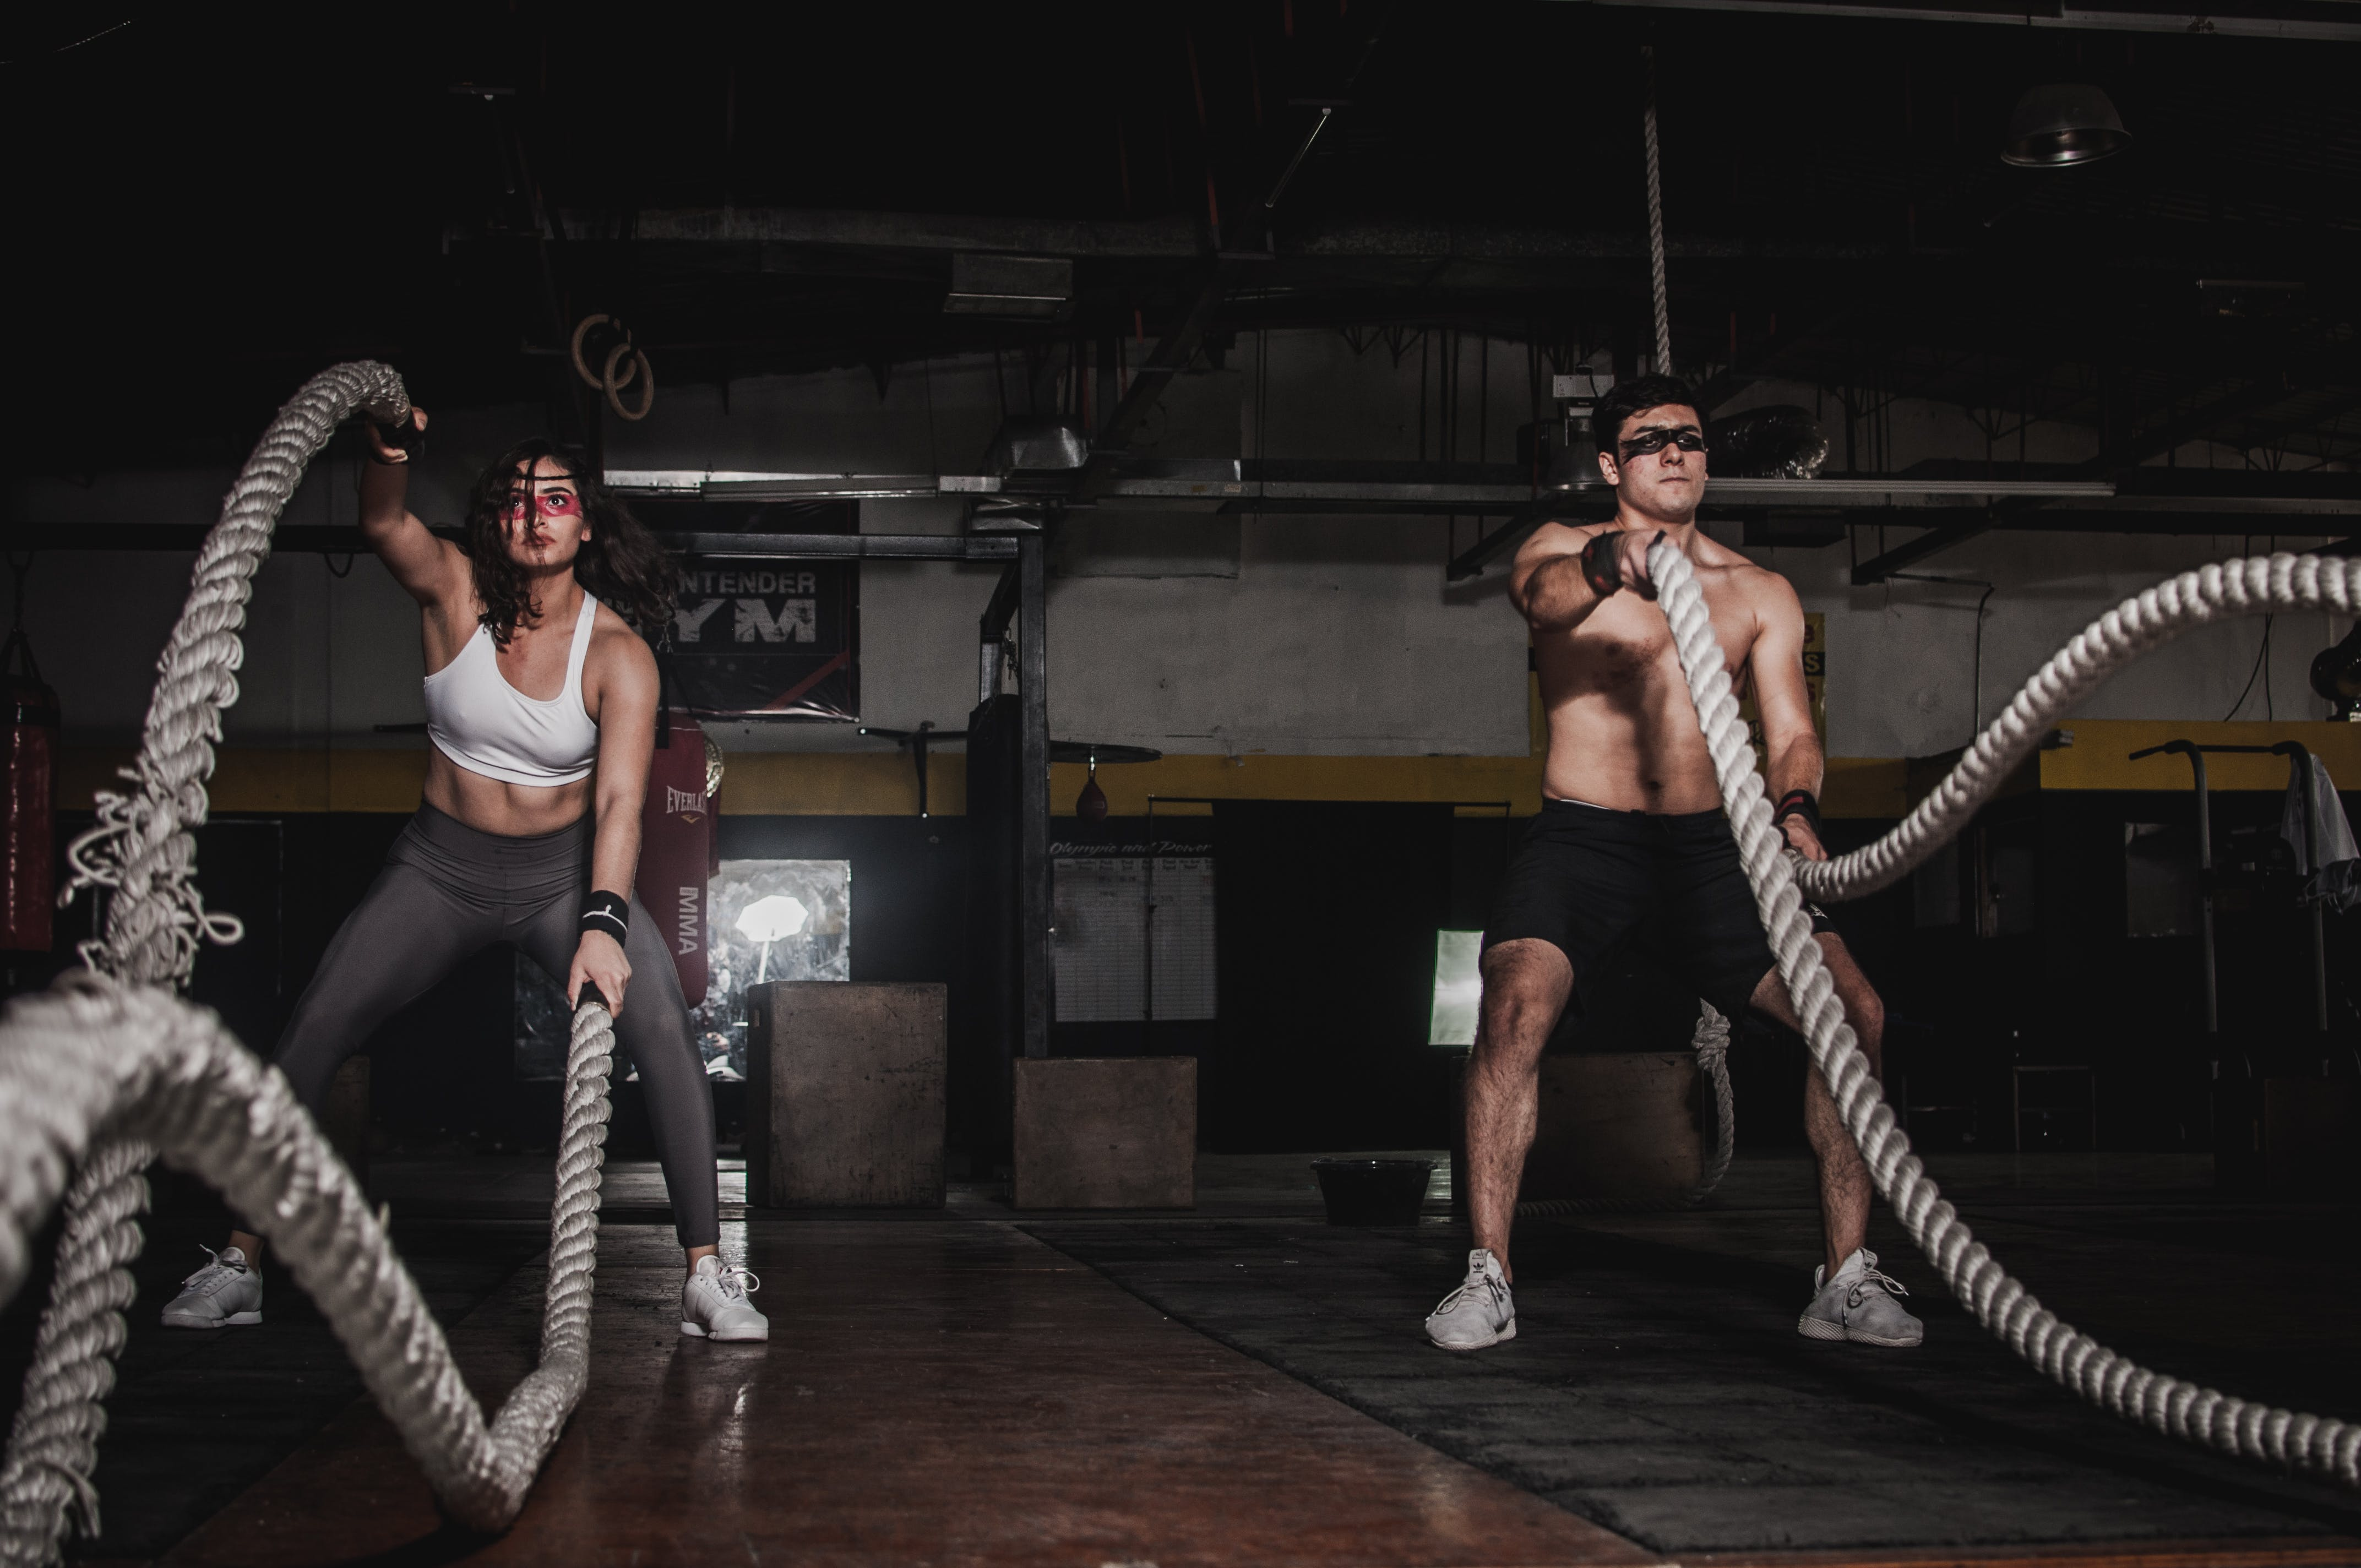 Man And Woman Holding Battle Ropes